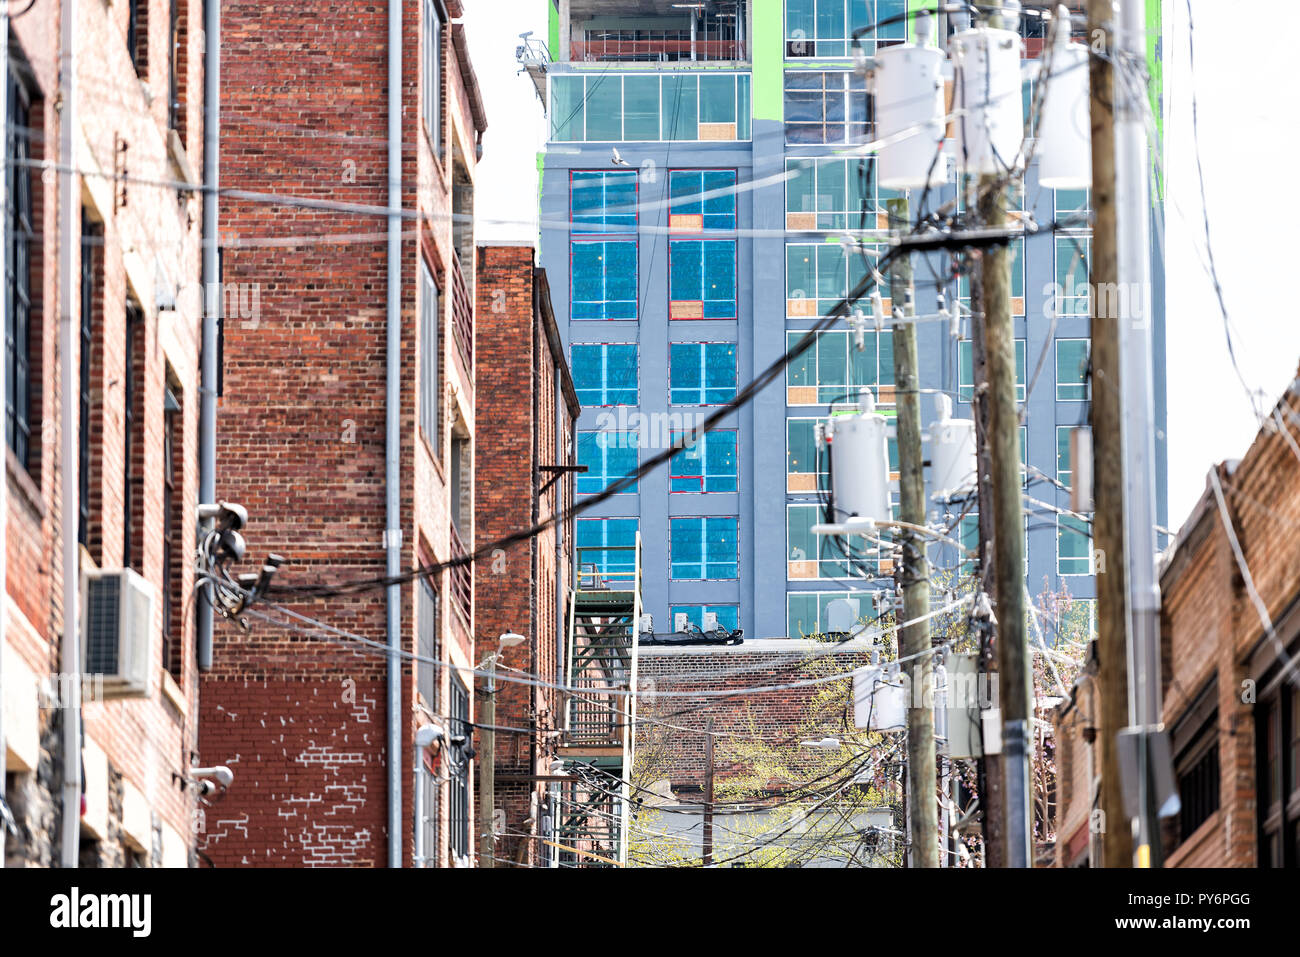 Asheville, USA Downtown old town street in hipster North Carolina NC famous town, city, nobody, many wires overhead cables, construction - Stock Image